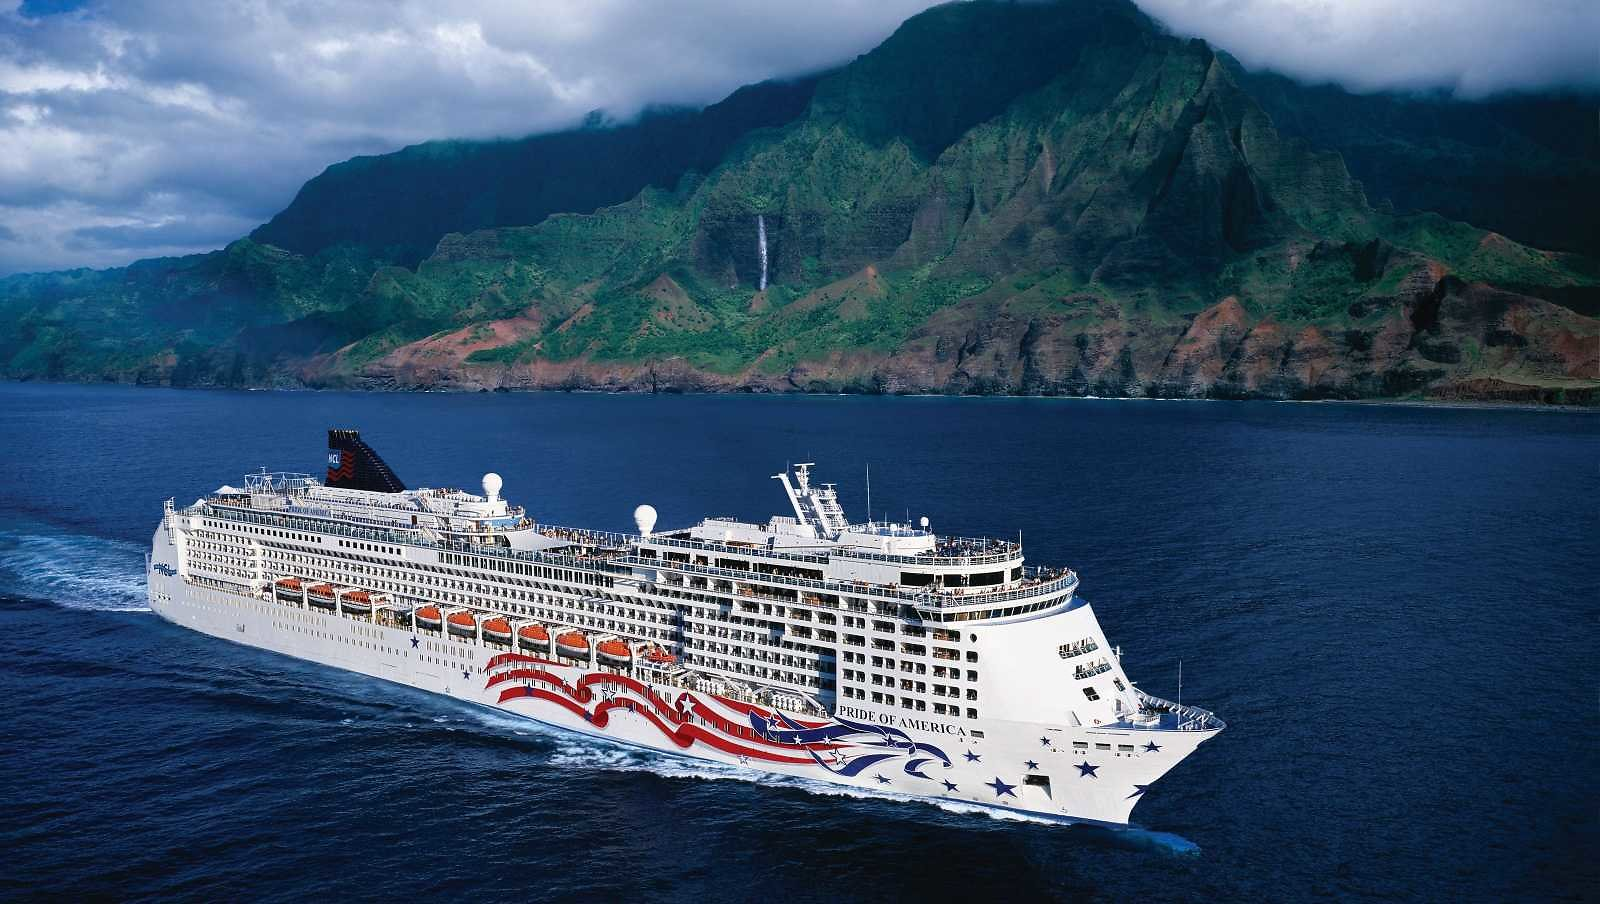 CDC 'no-sail' Order Extension Official: Cruise Ships Will Not Sail in U.S. Waters Until Nov. 1